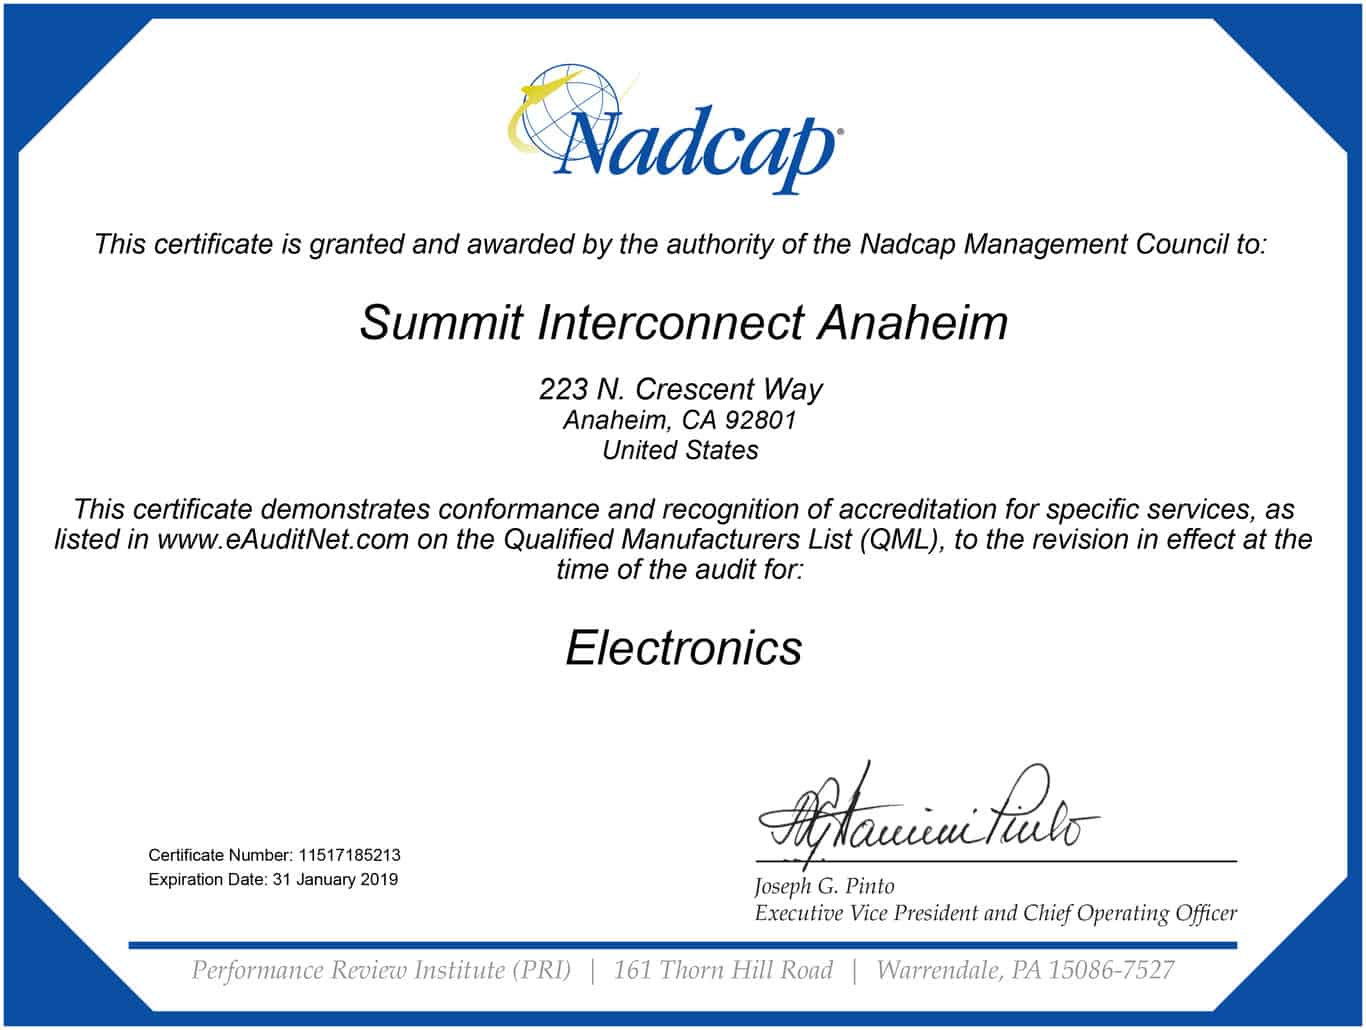 Summit Interconnect Achieves Nadcap Accreditation in Electronics